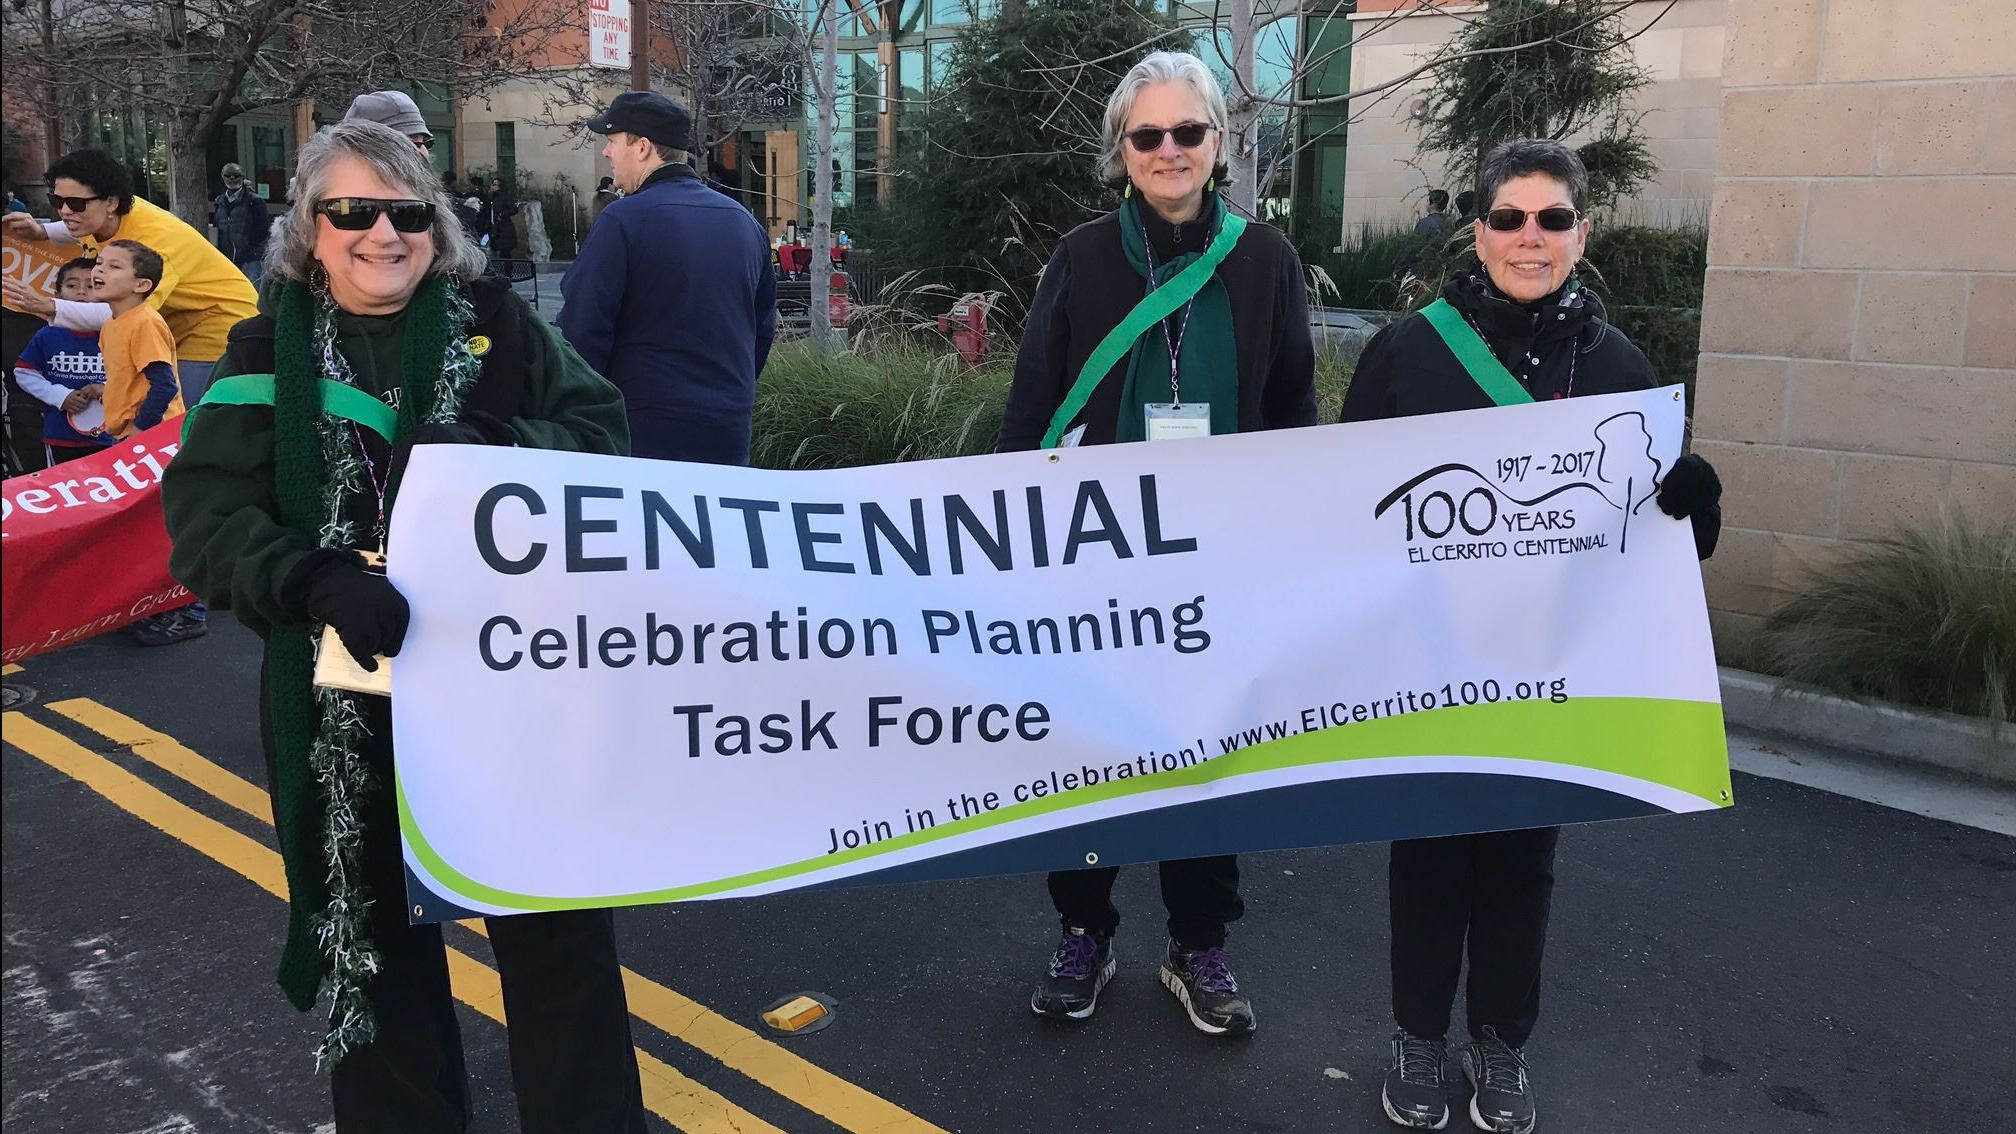 Members of the Centennial Celebration Planning Task Force carrying a banner